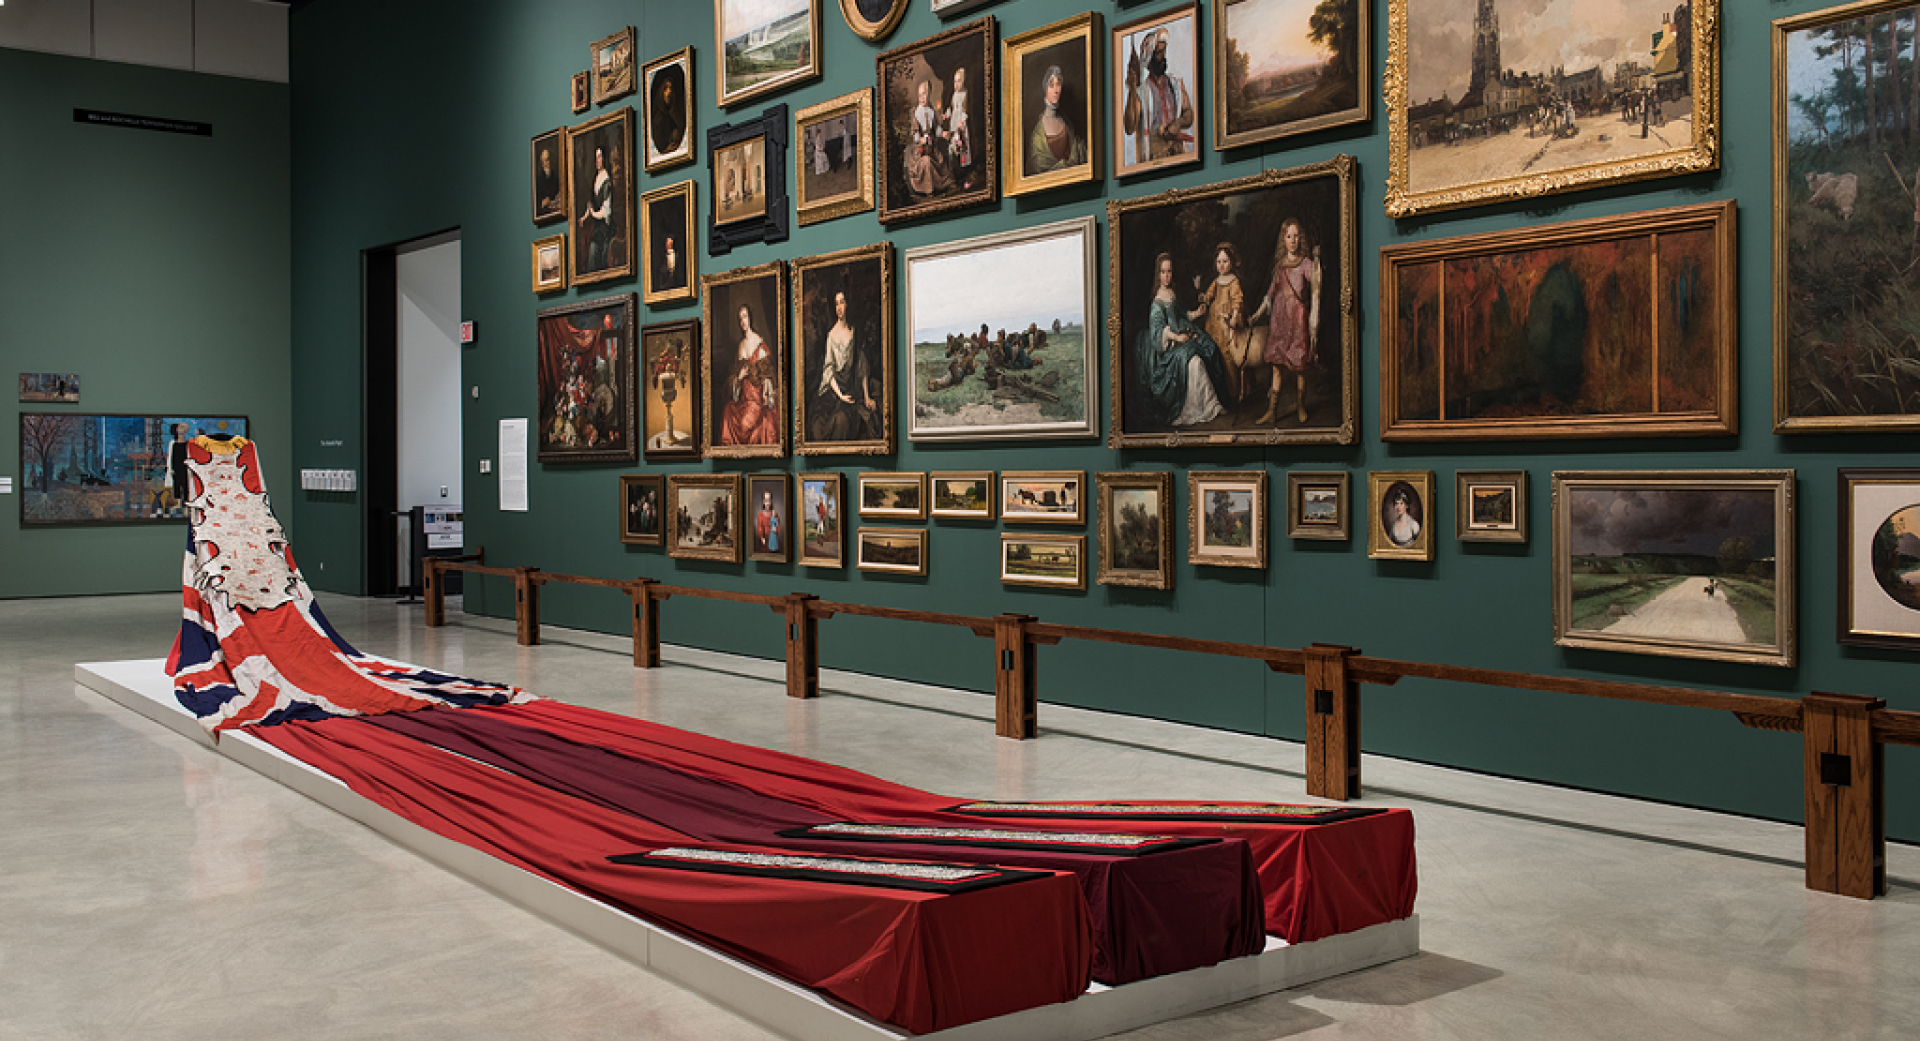 A green wall hung with framed paintings and a ceremonial garment with very long trail